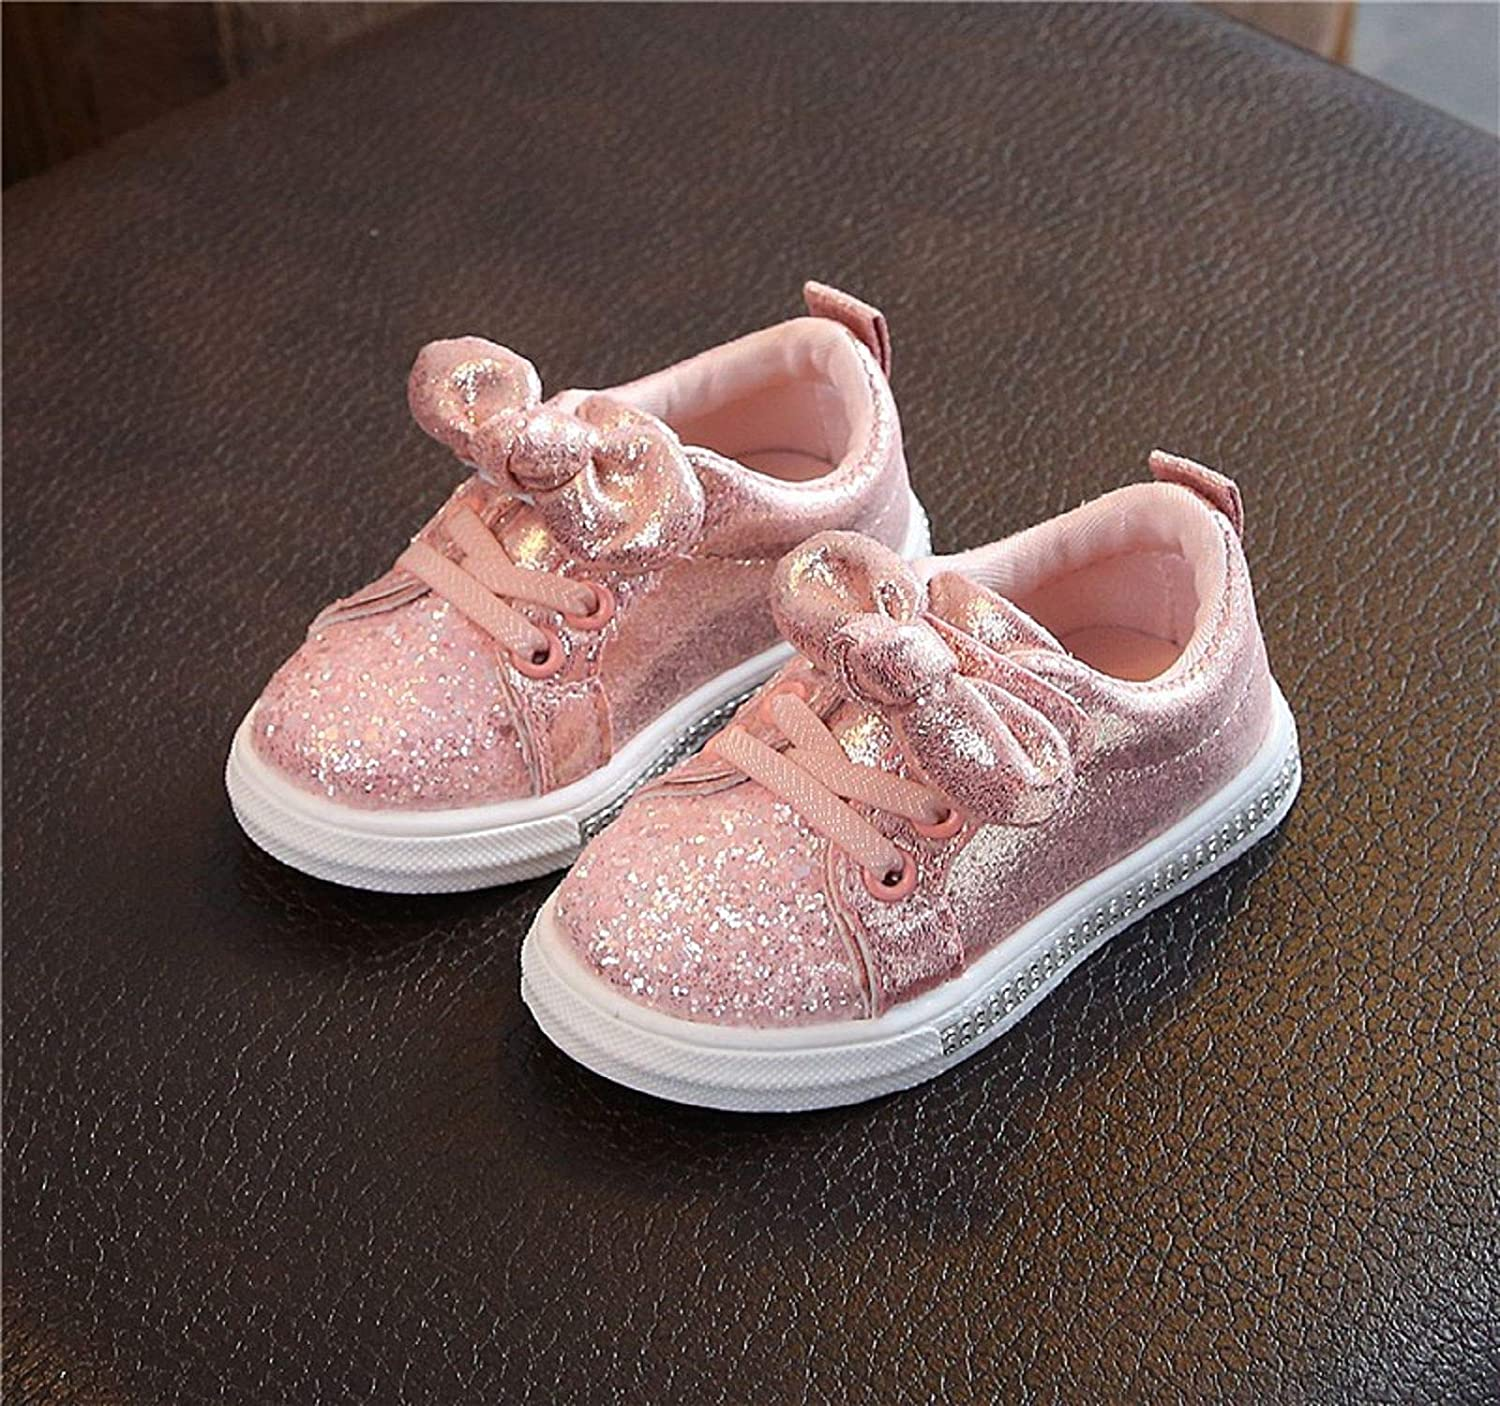 Cinhent Sneakers Shoes Girls and Boys Bling Sequins Bowknot Crystal Run Sport Sneakers Shoes Washable Athletic Sneaker for Children Baby Girls Boys